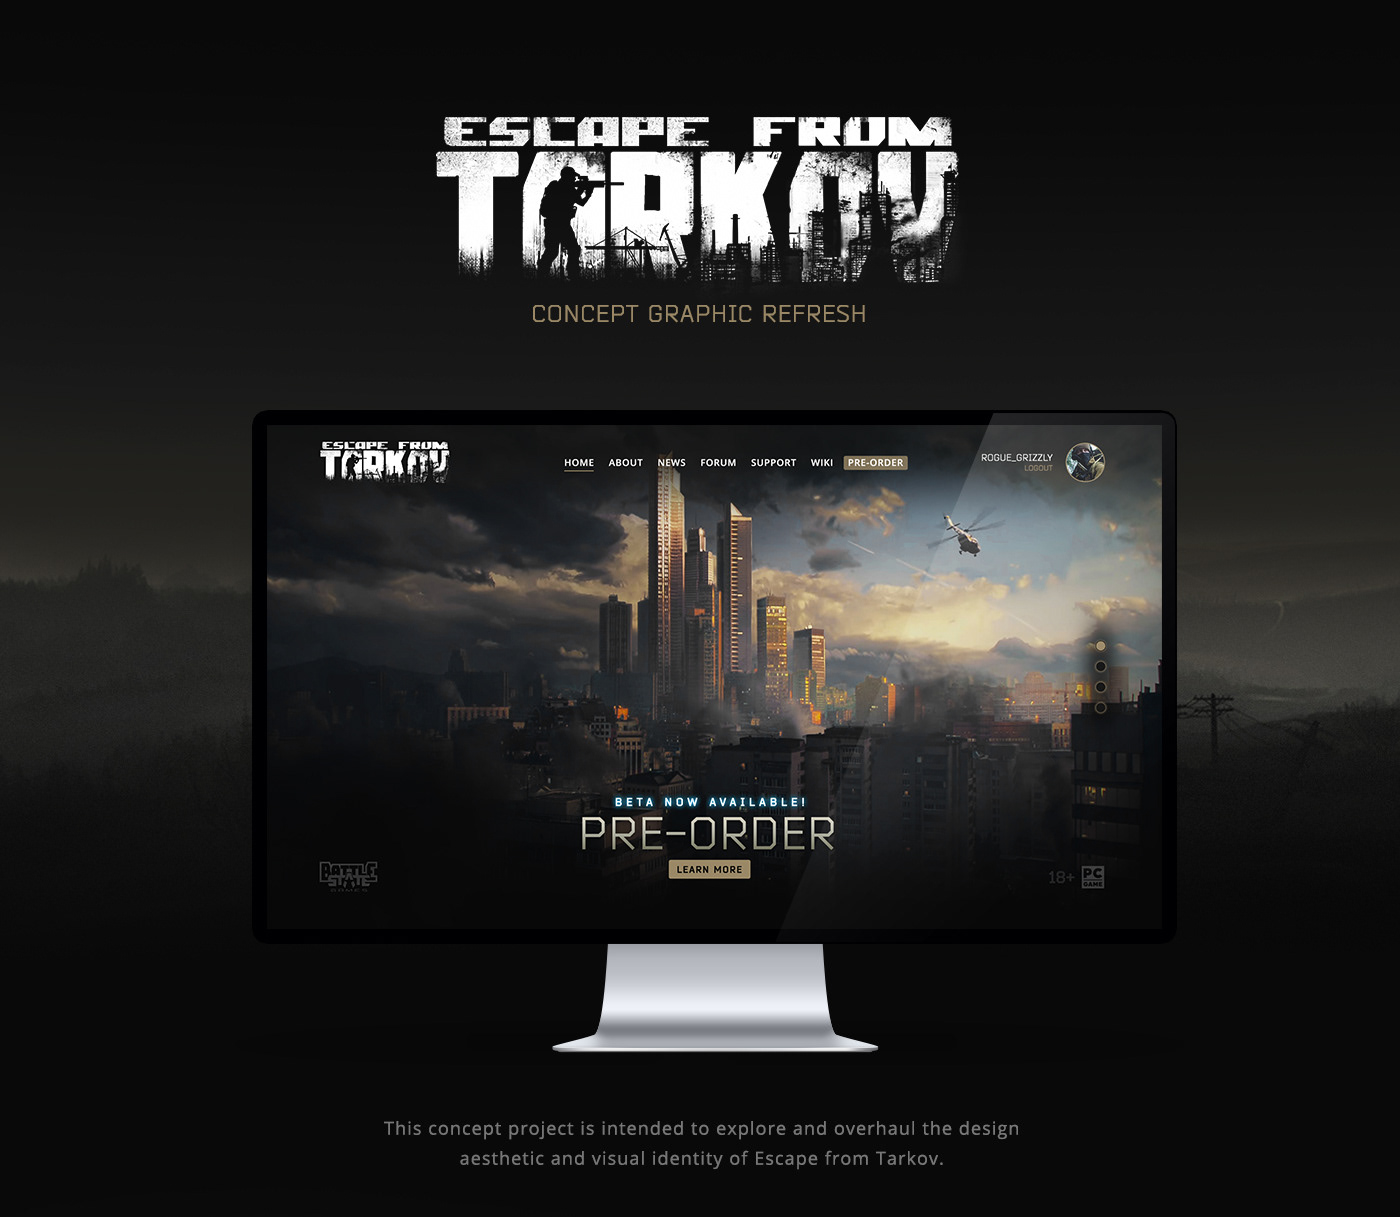 Escape from Tarkov Concept Graphic Refresh on Behance